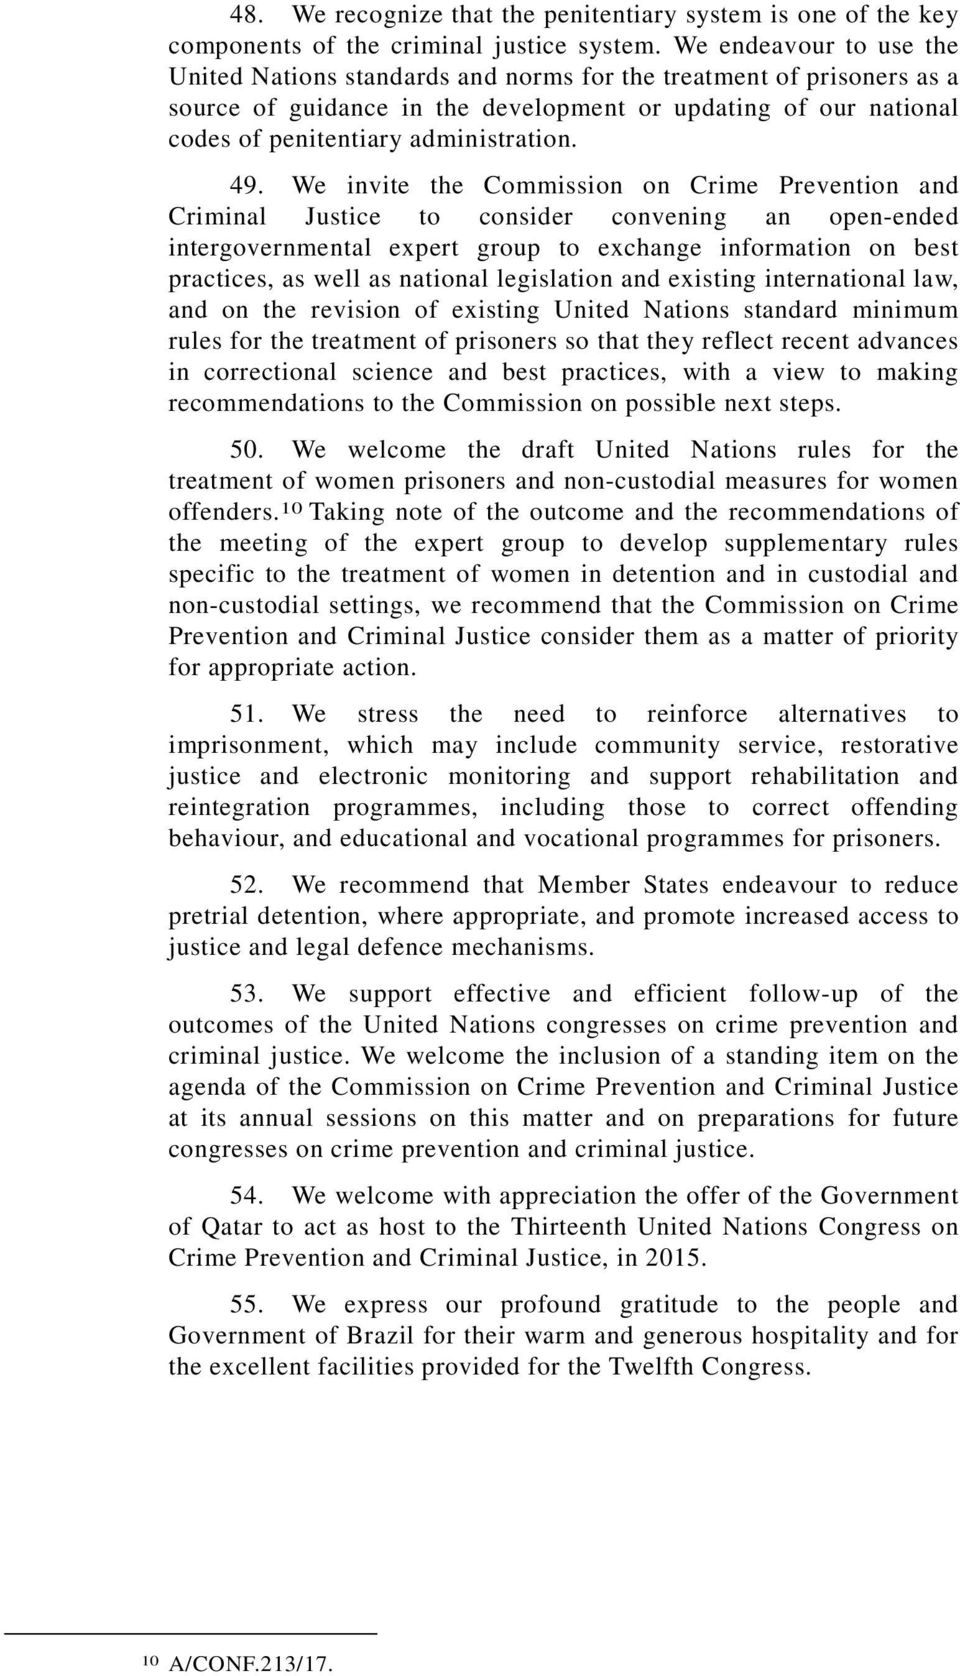 49. We invite the Commission on Crime Prevention and Criminal Justice to consider convening an open-ended intergovernmental expert group to exchange information on best practices, as well as national